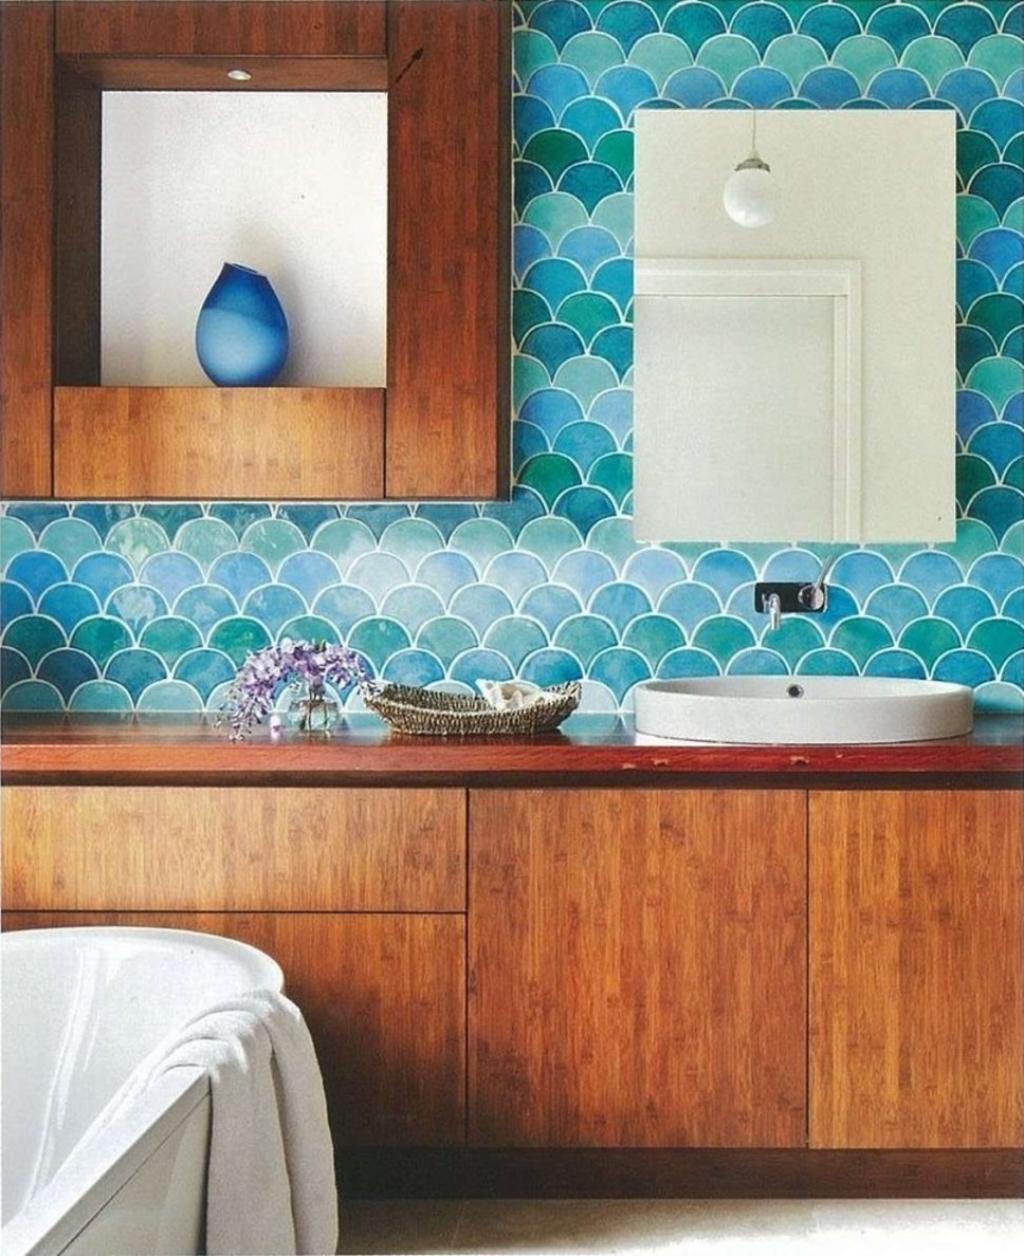 Wonderful Ideas And Pictures Ceramic Tile Murals For Bathroom - Eclectic bathroom designs